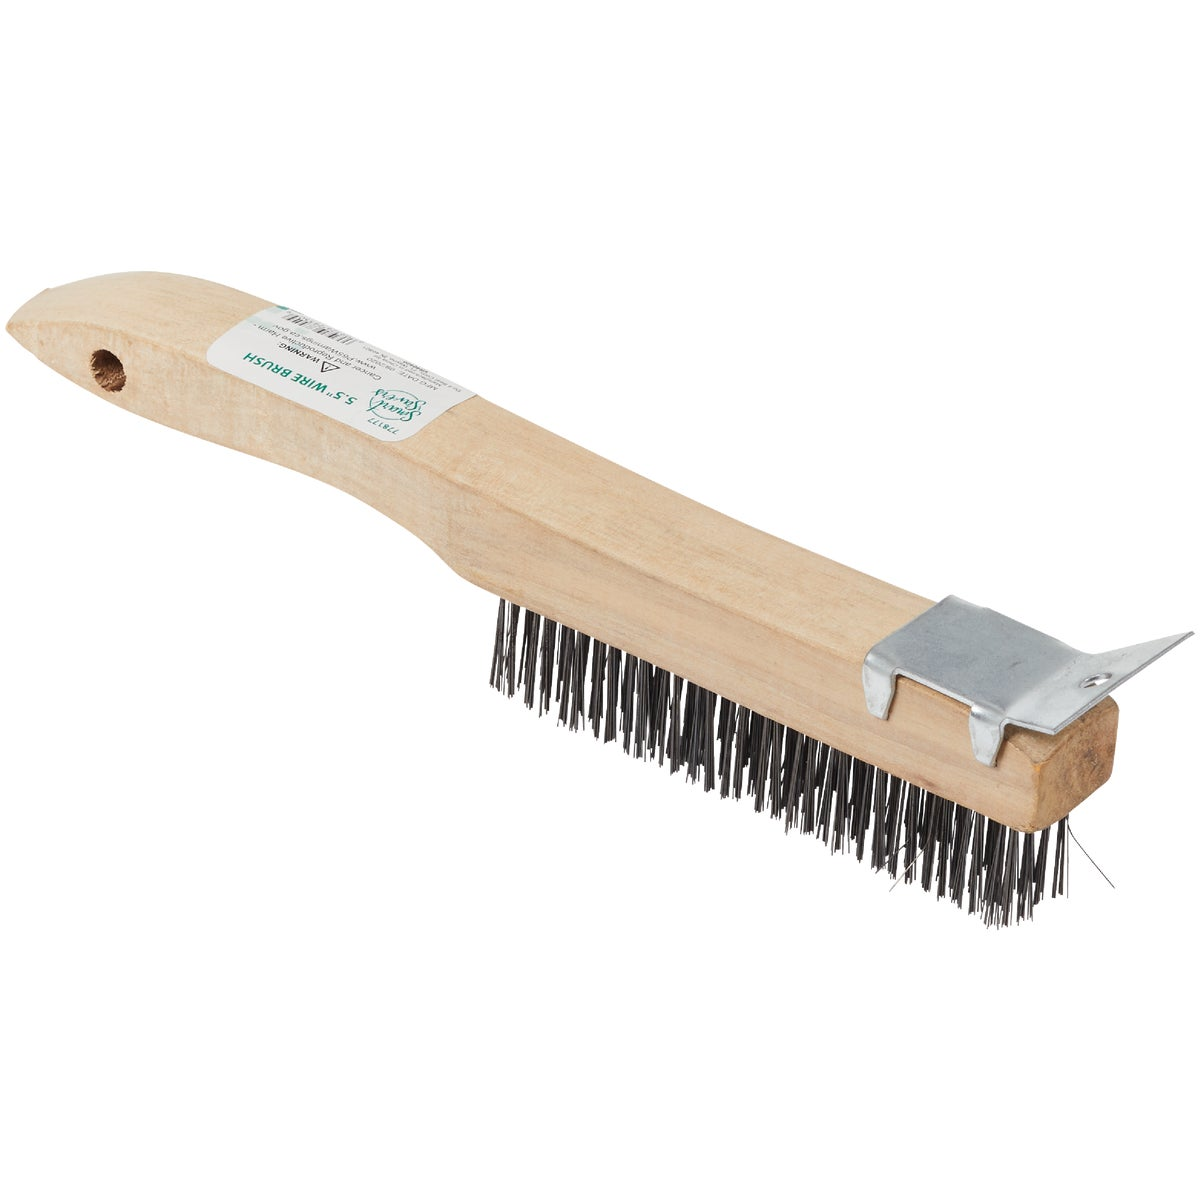 WIRE BRUSH - 820402 by Do it Best